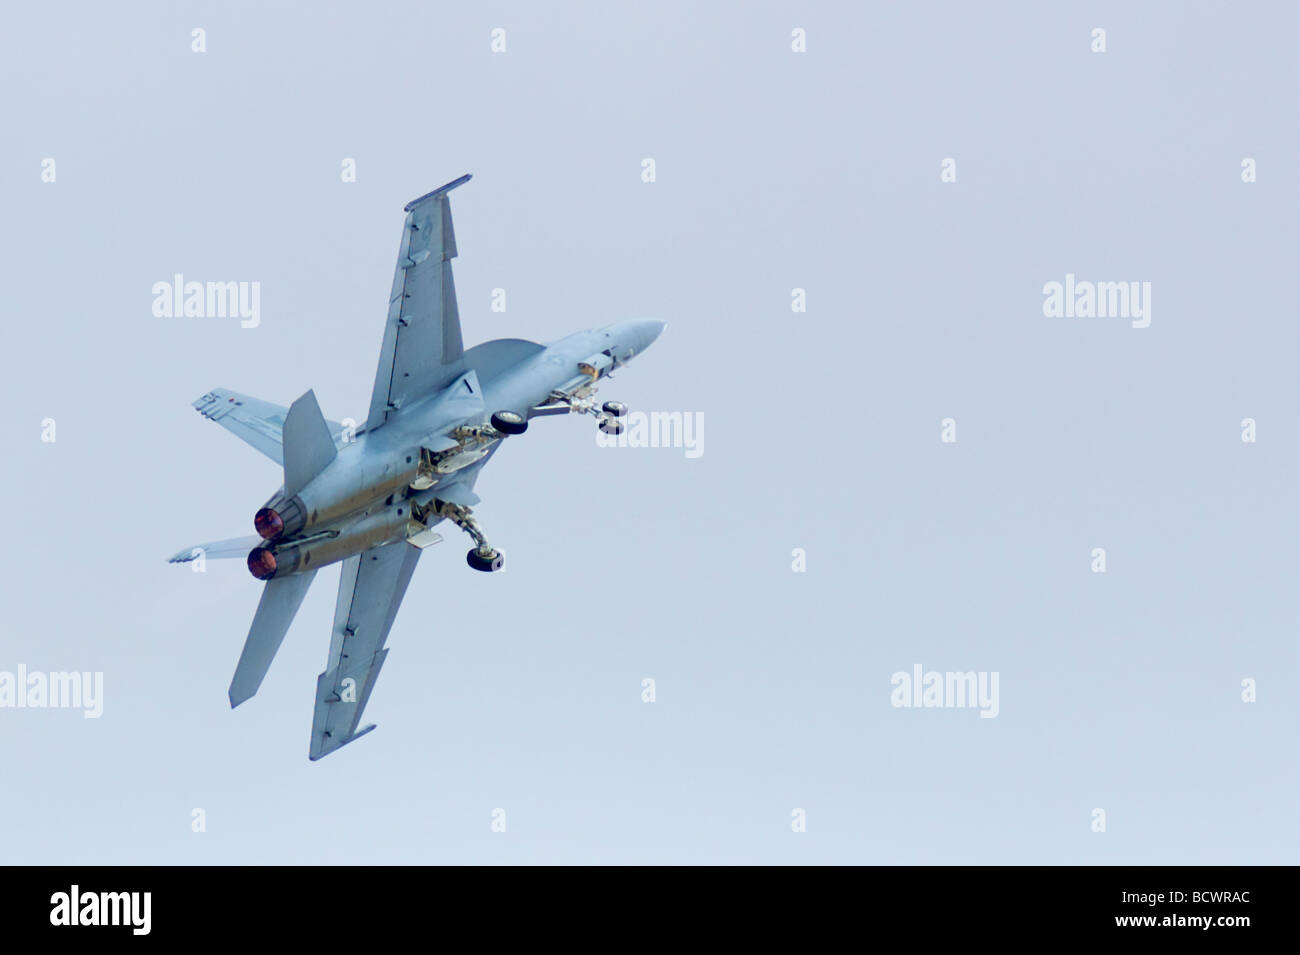 An FA 18 Hornet fighter jet flies during a tactical demonstration at the Miramar Airshow 2008  Stock Photo